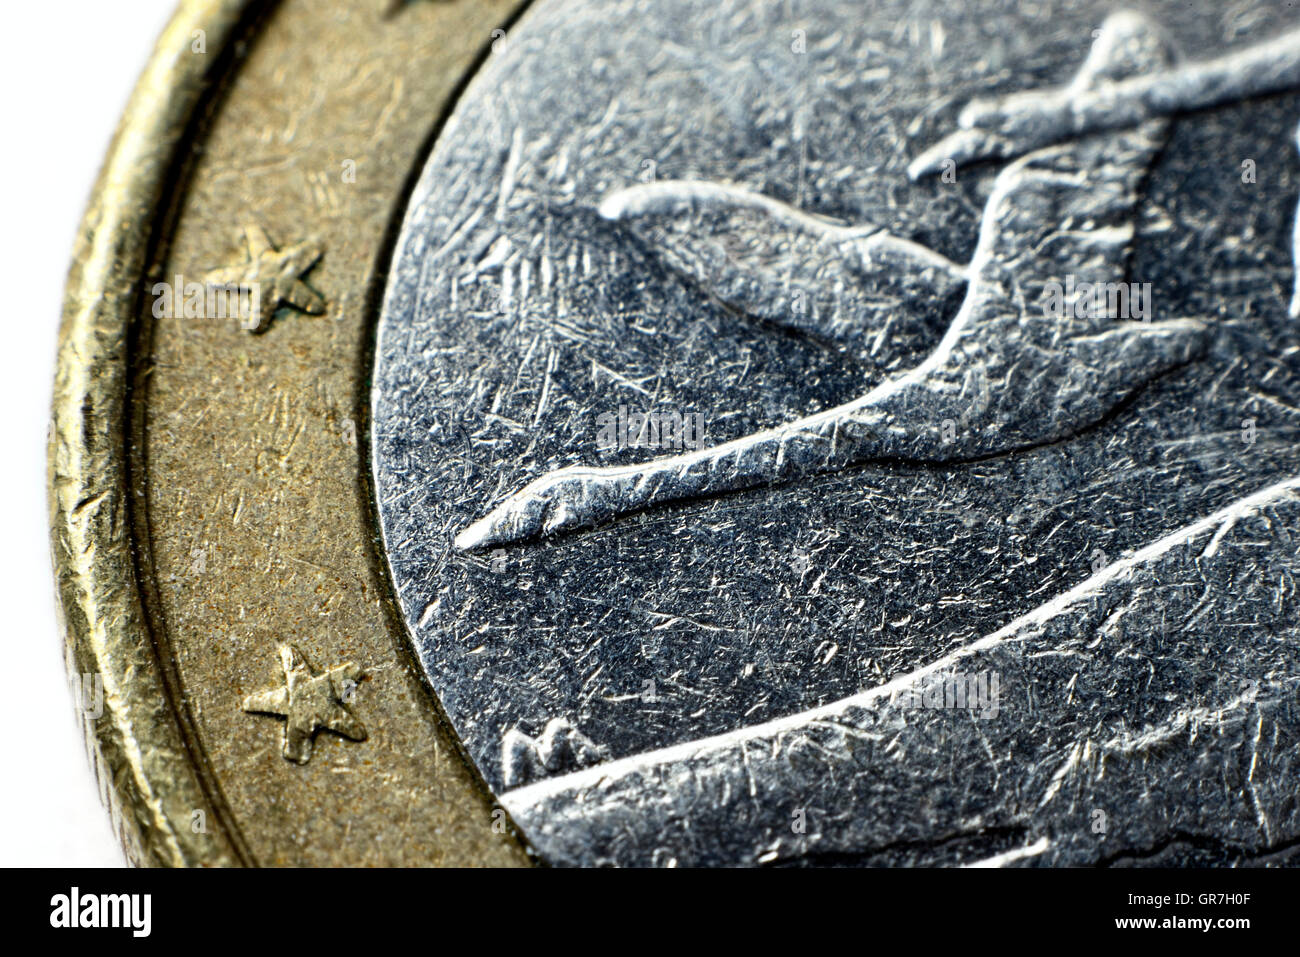 Finnish One Euro Coin - Stock Image